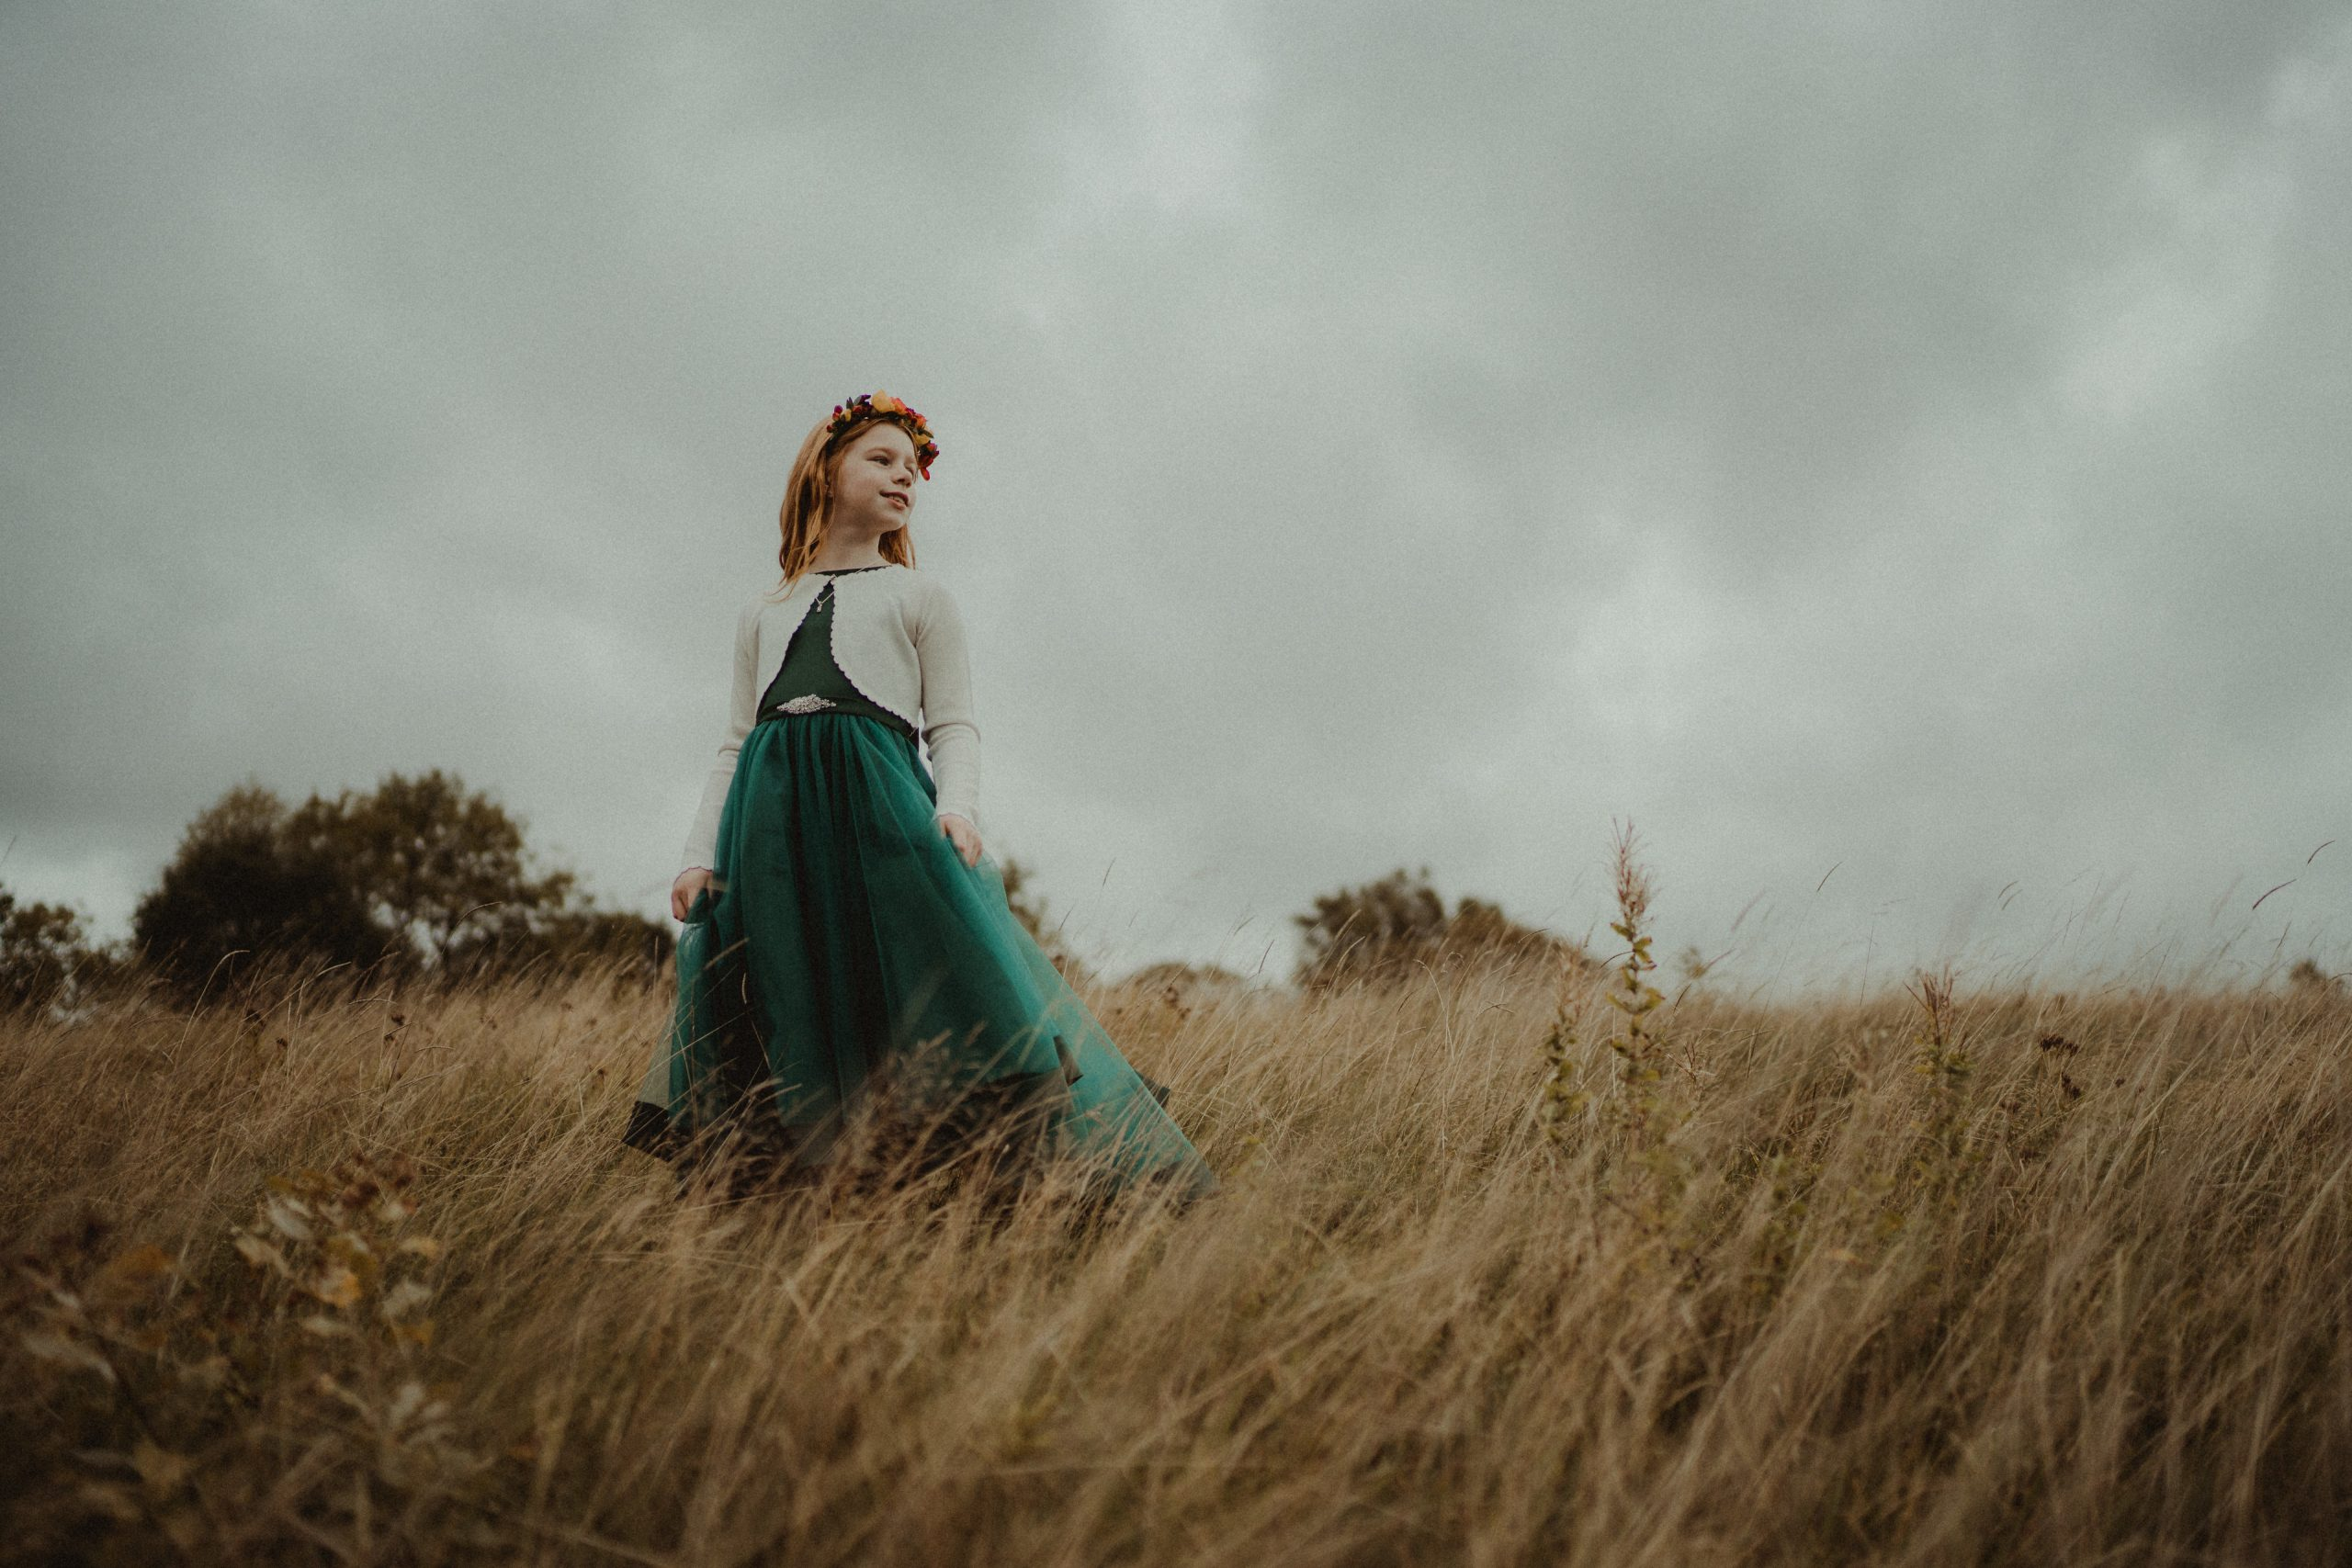 A young girl in the middle pf a field